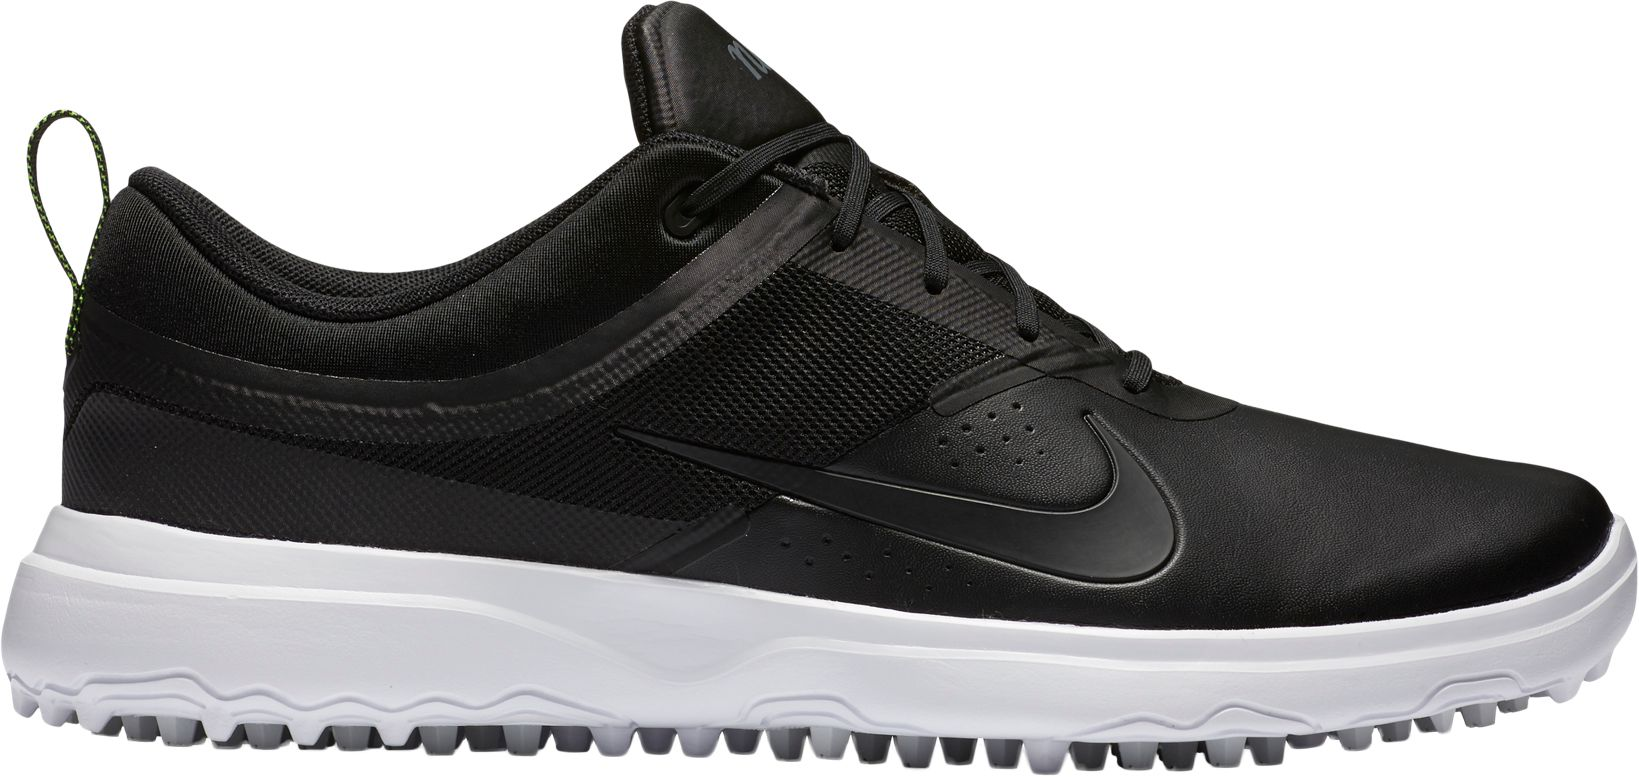 Nike Women\u0027s Akamai Golf Shoes